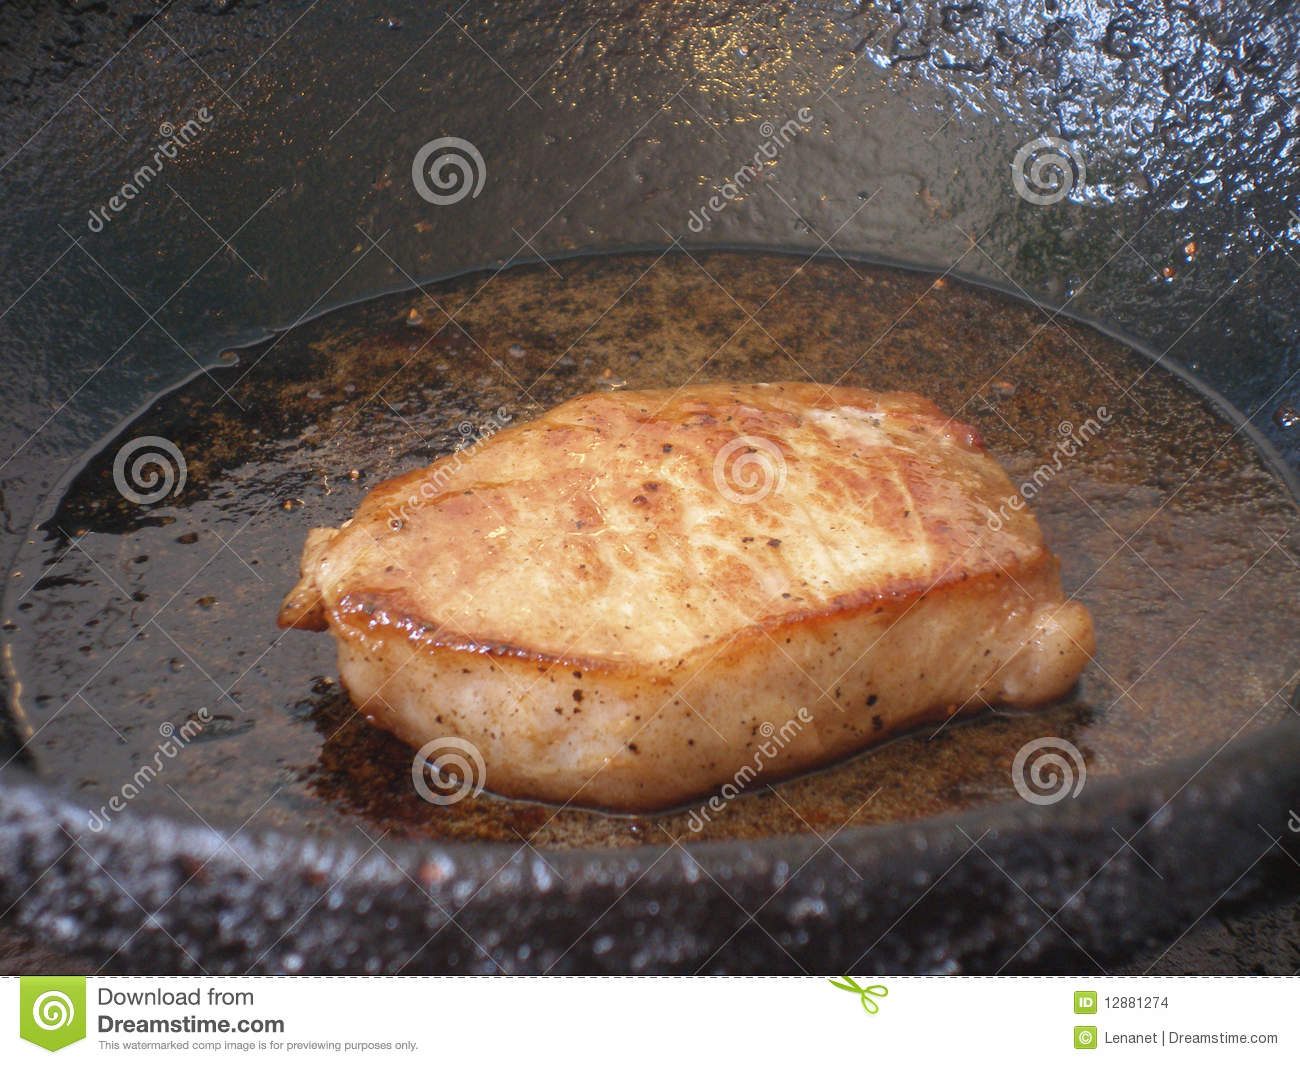 how to cook pork steaks in frying pan